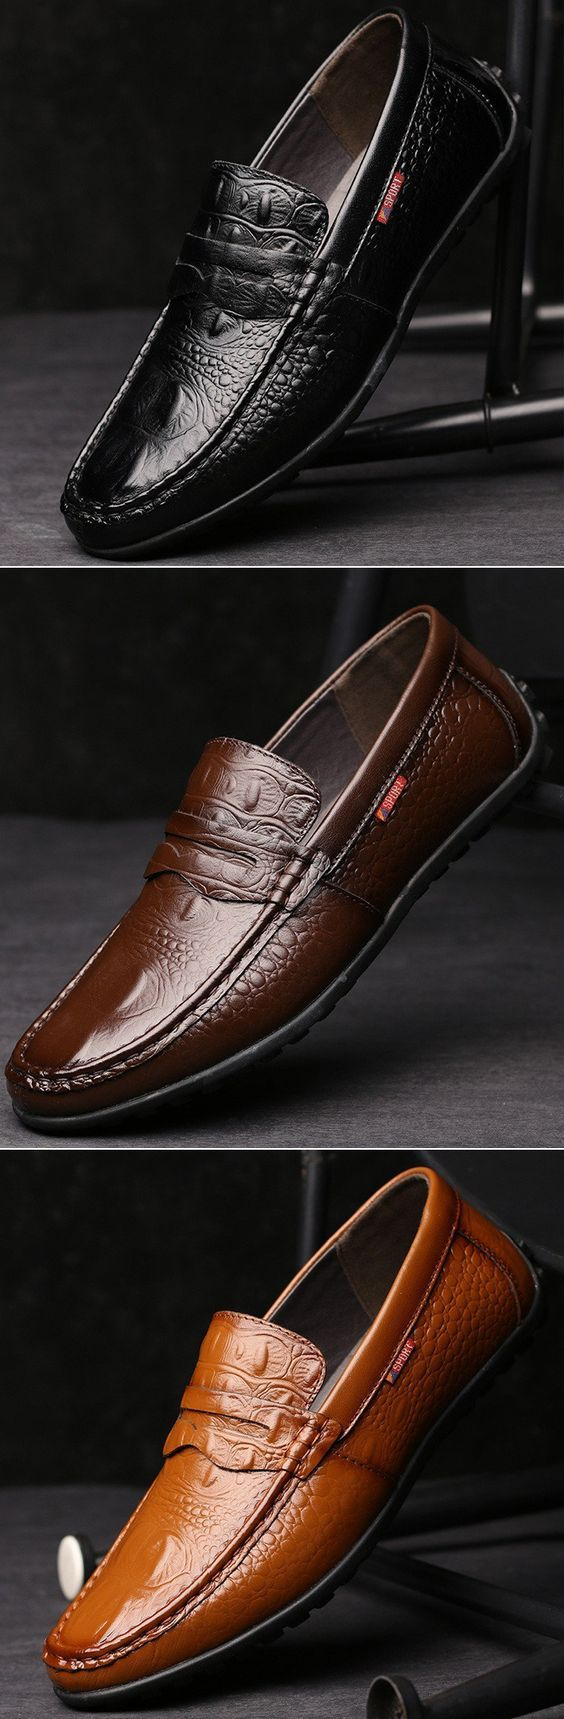 Men Crocodile Pattern Soft Slip On Doug Shoes Casual Leather Driving Loafers